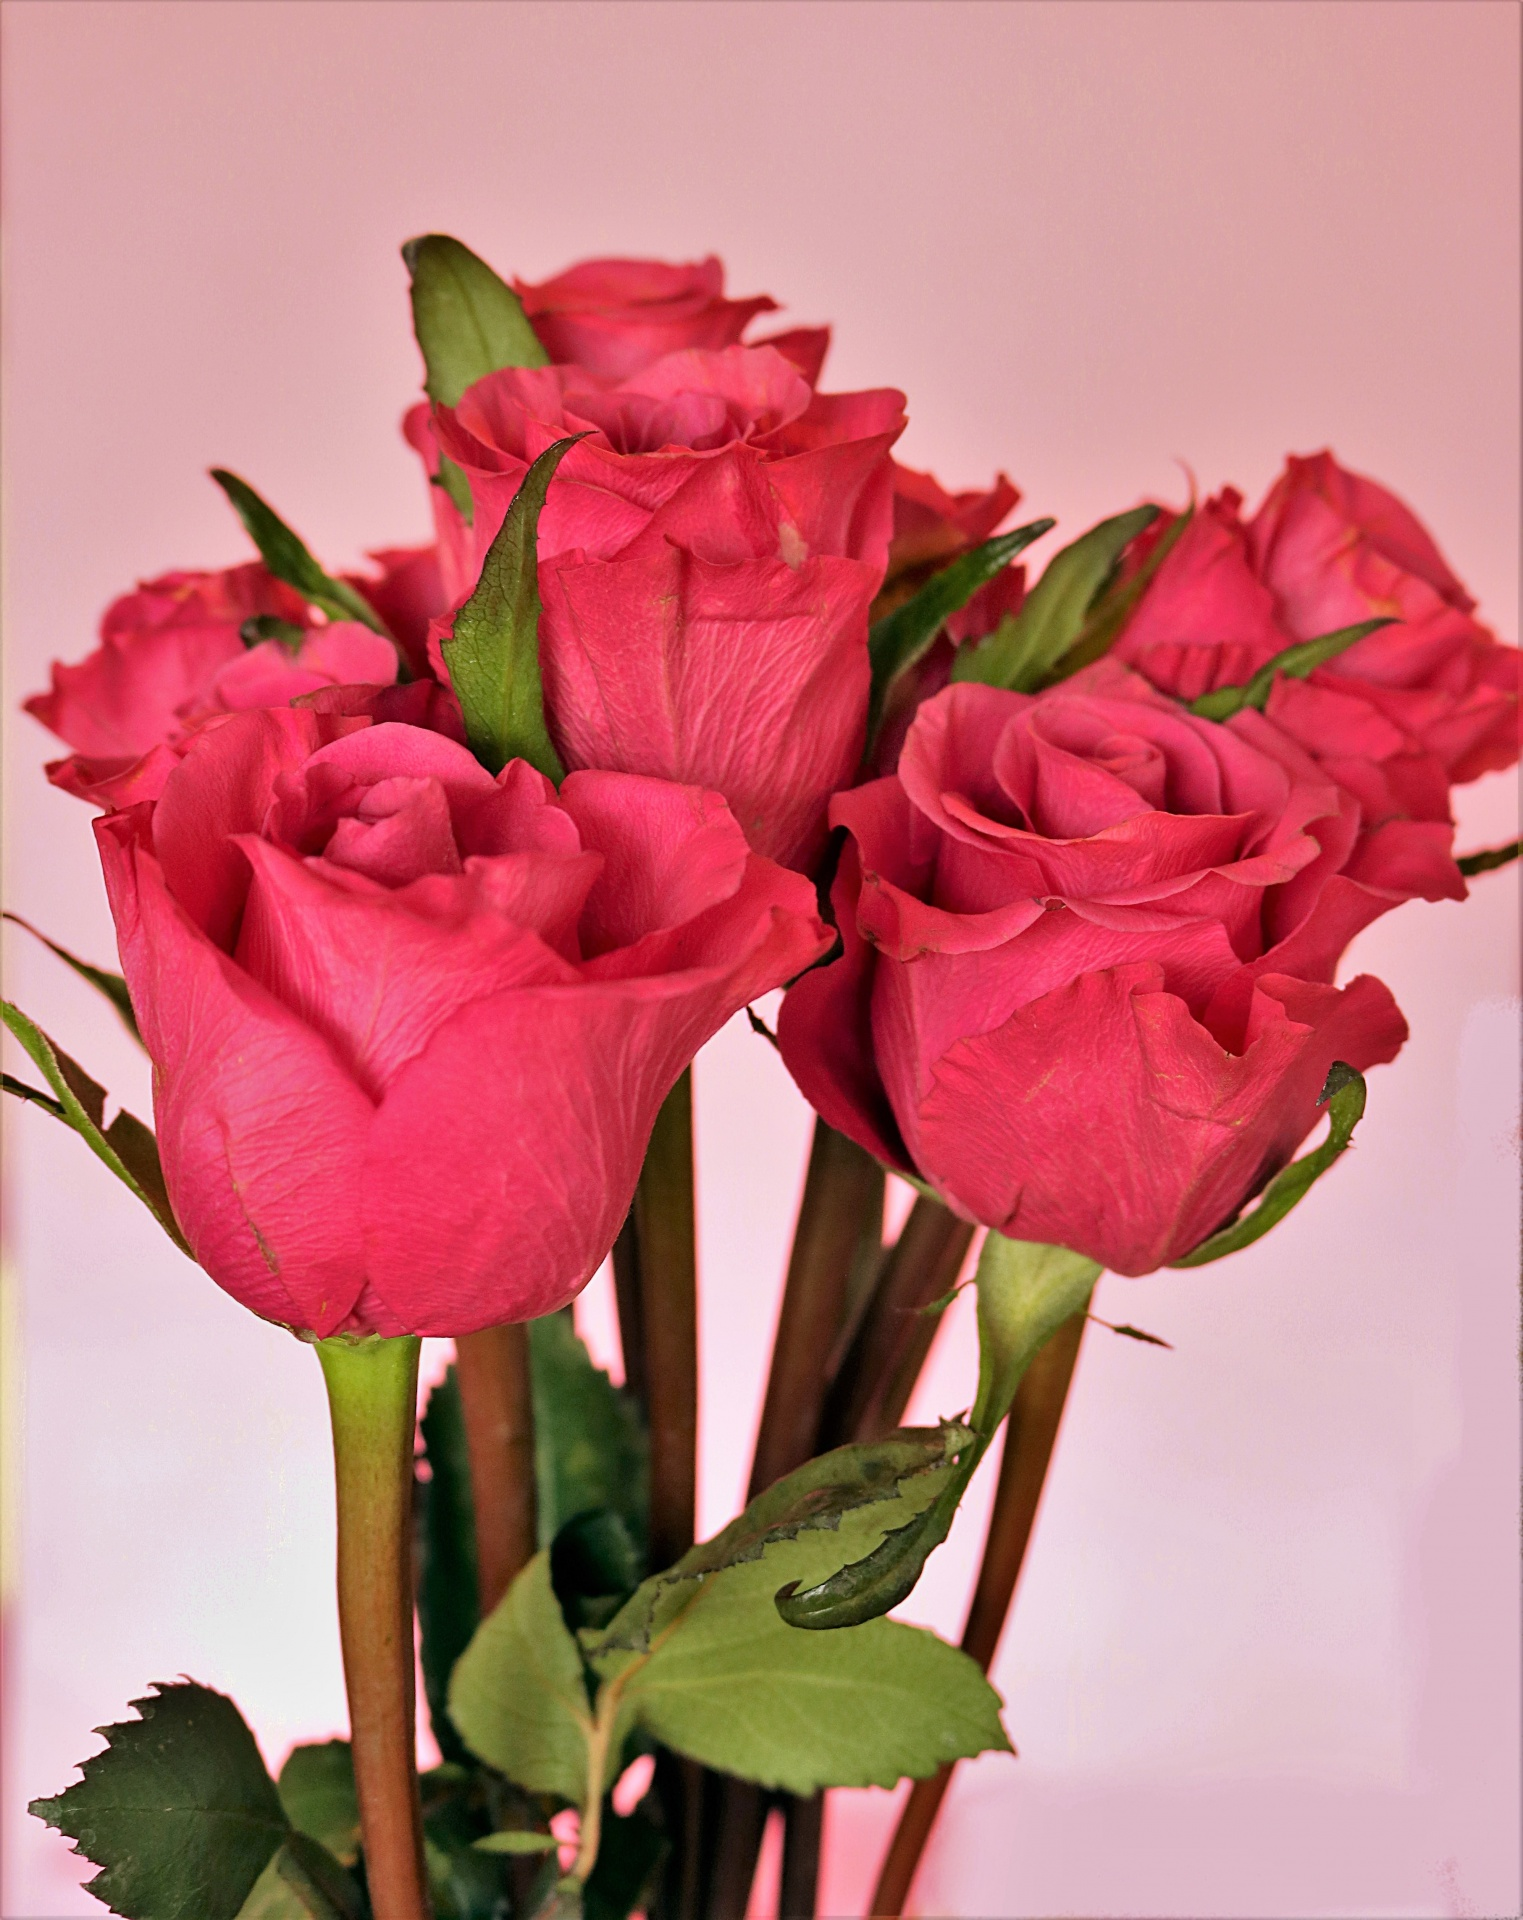 pink-rose-buds-on-pink-background